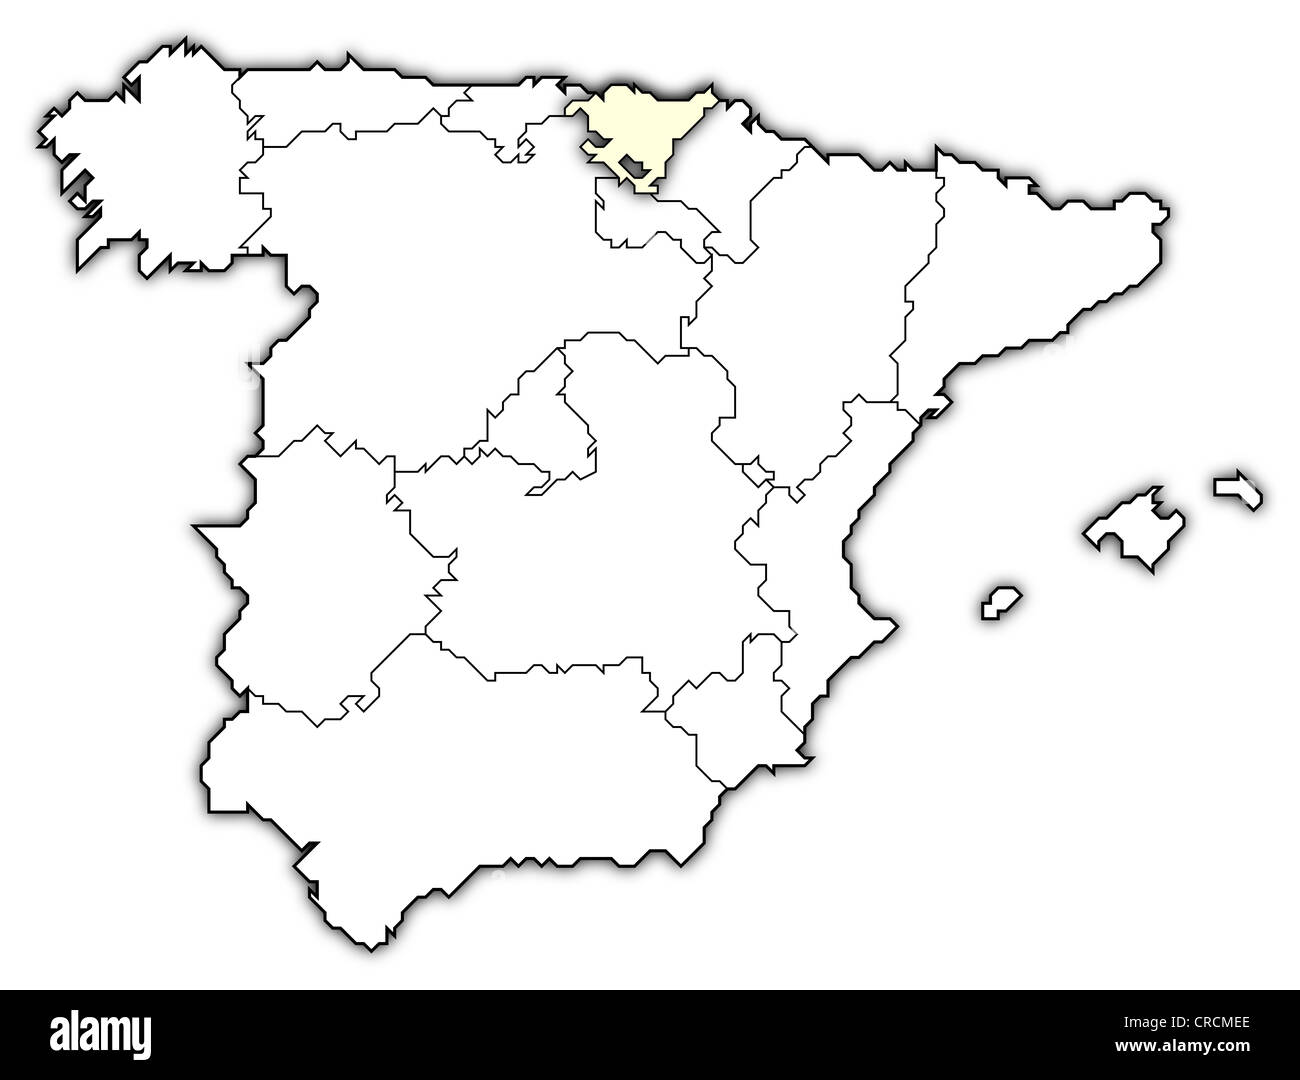 Political Map Of Spain With The Several Regions Where Basque Country